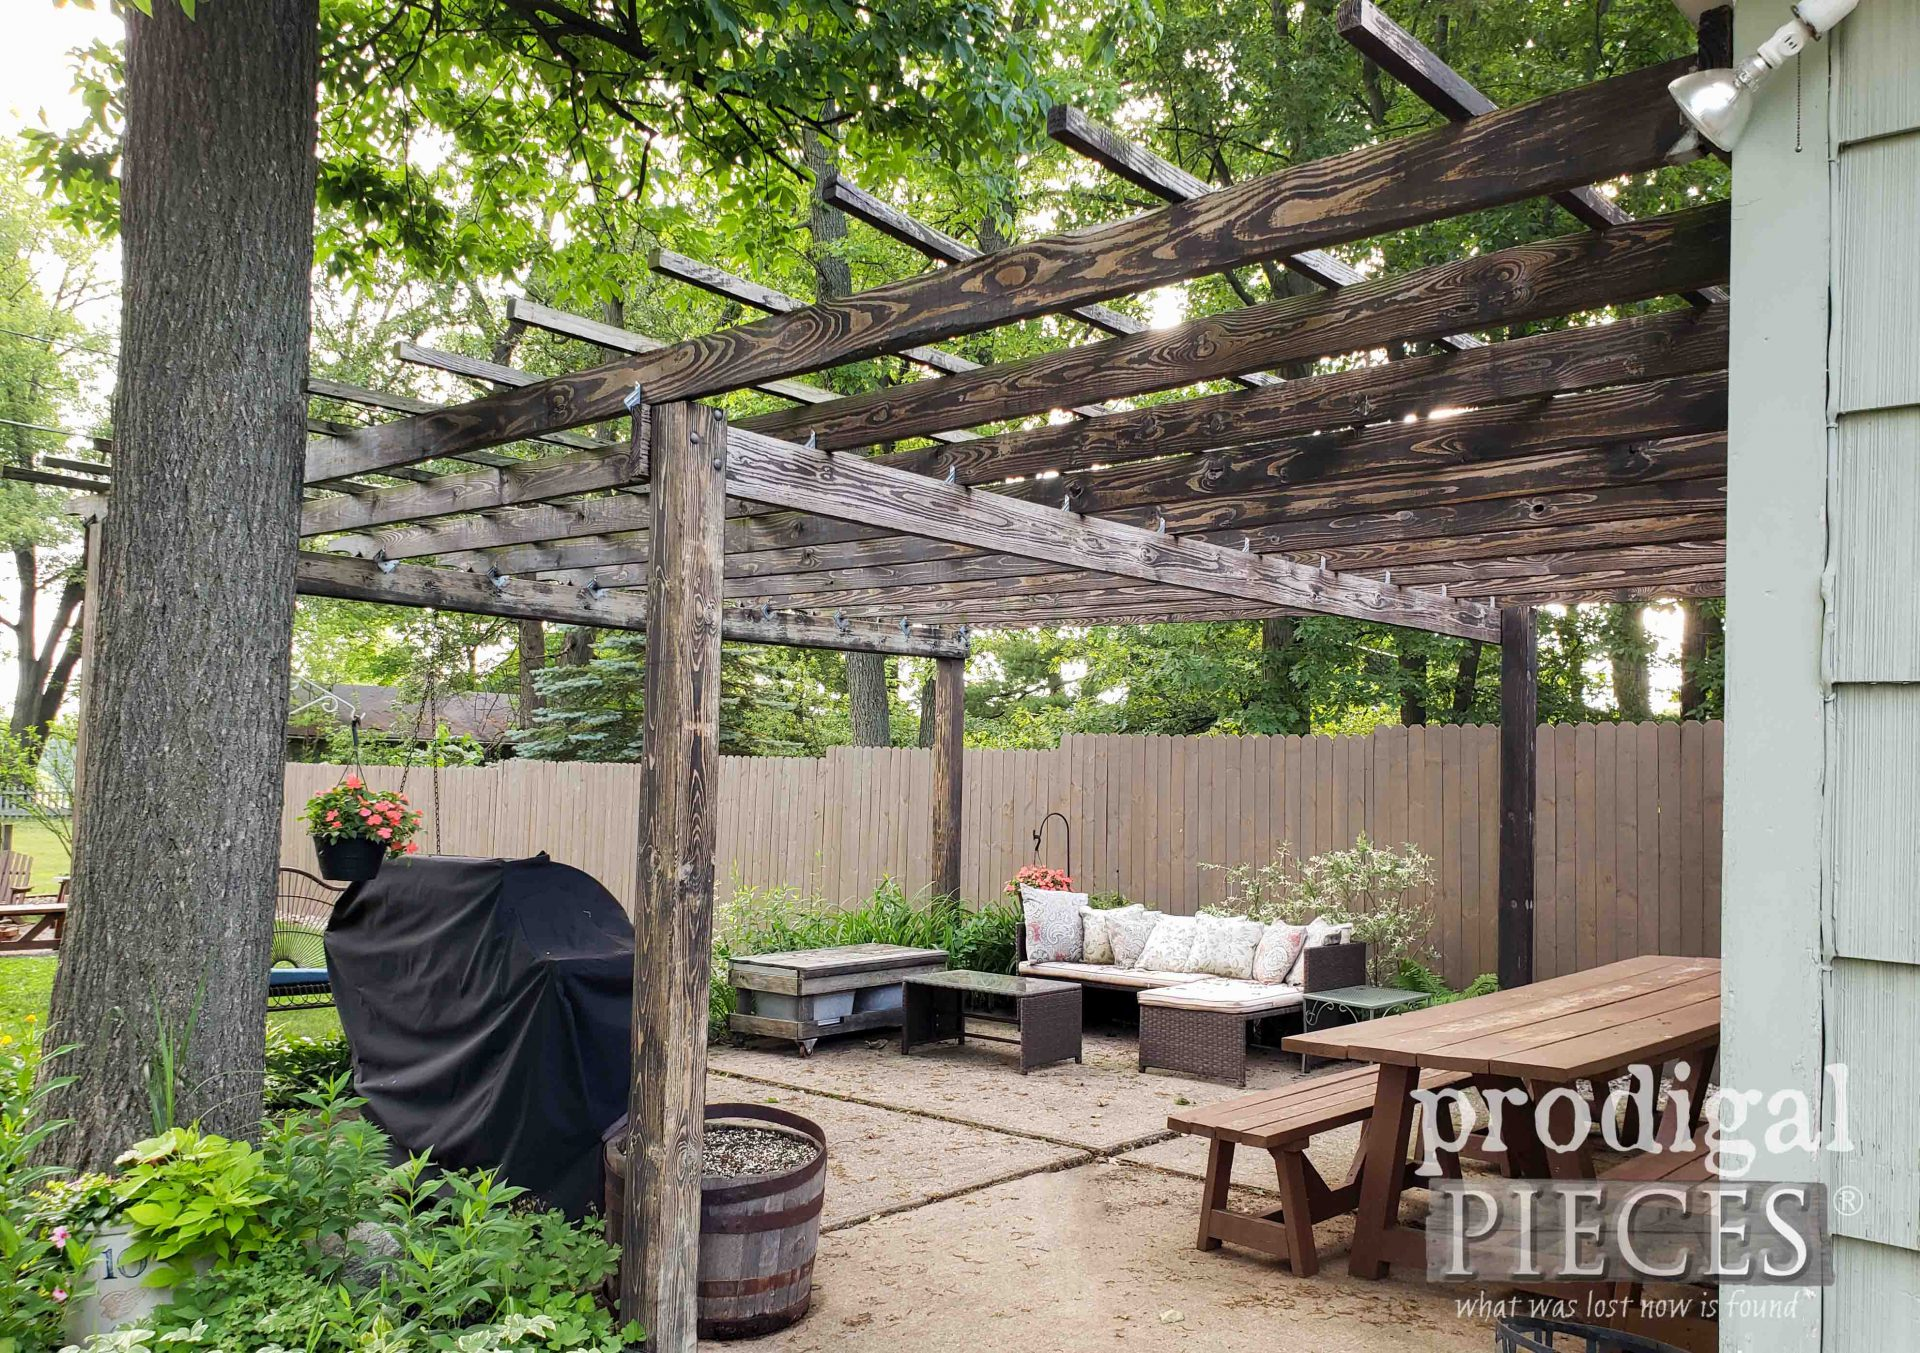 Prodigal Pieces DIY Patio & Pergola Before Update | prodigalpieces.com